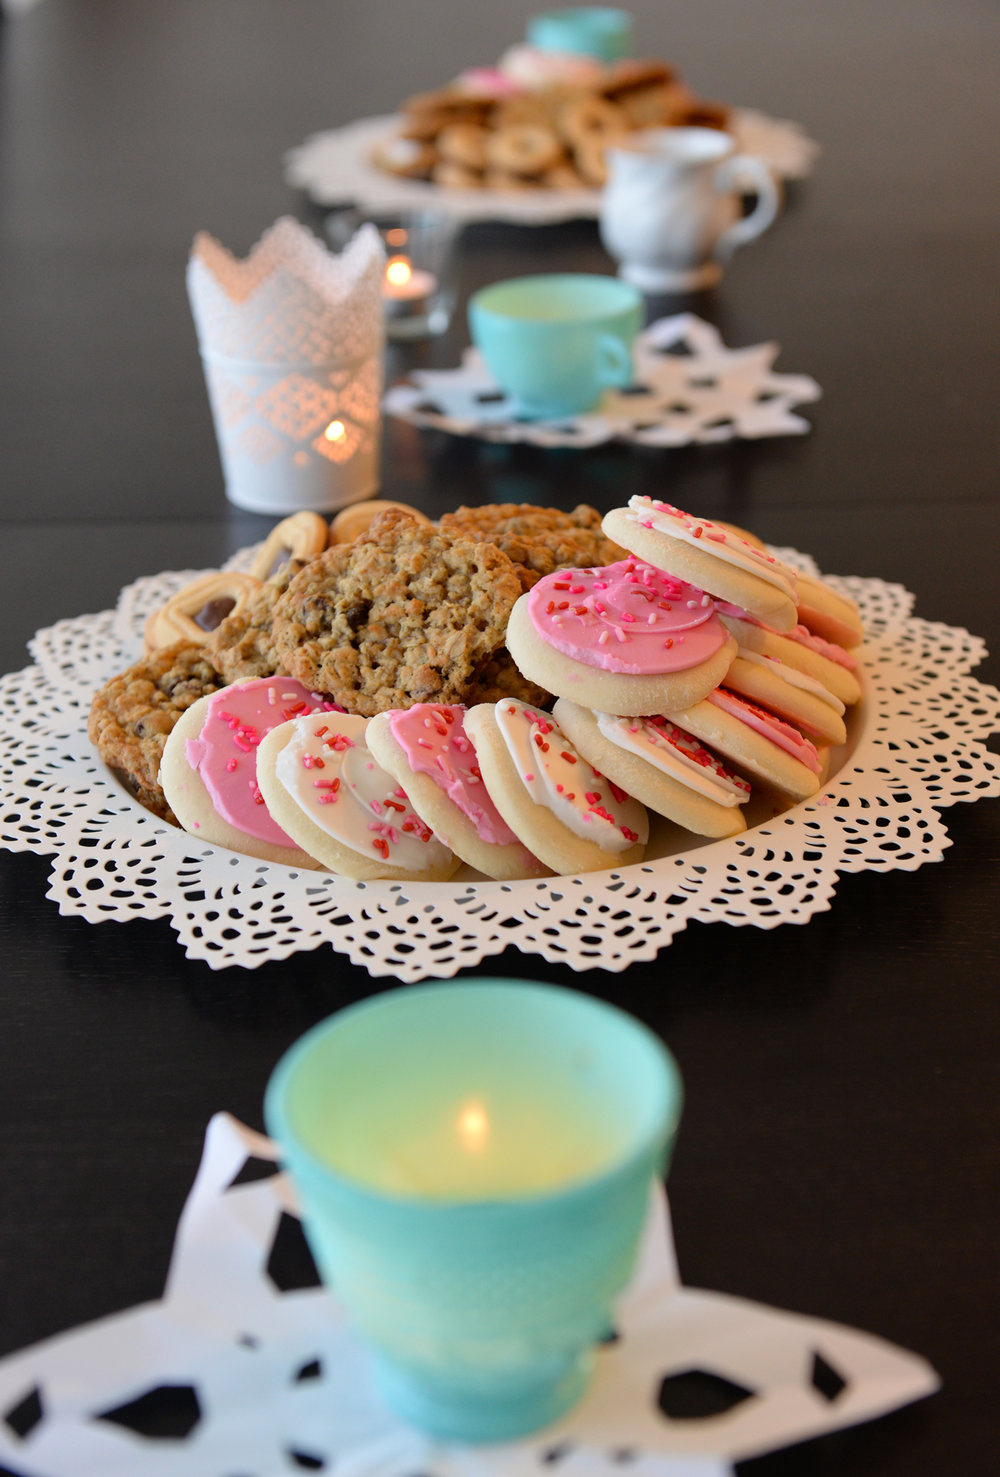 Candles + cookies = cozy!